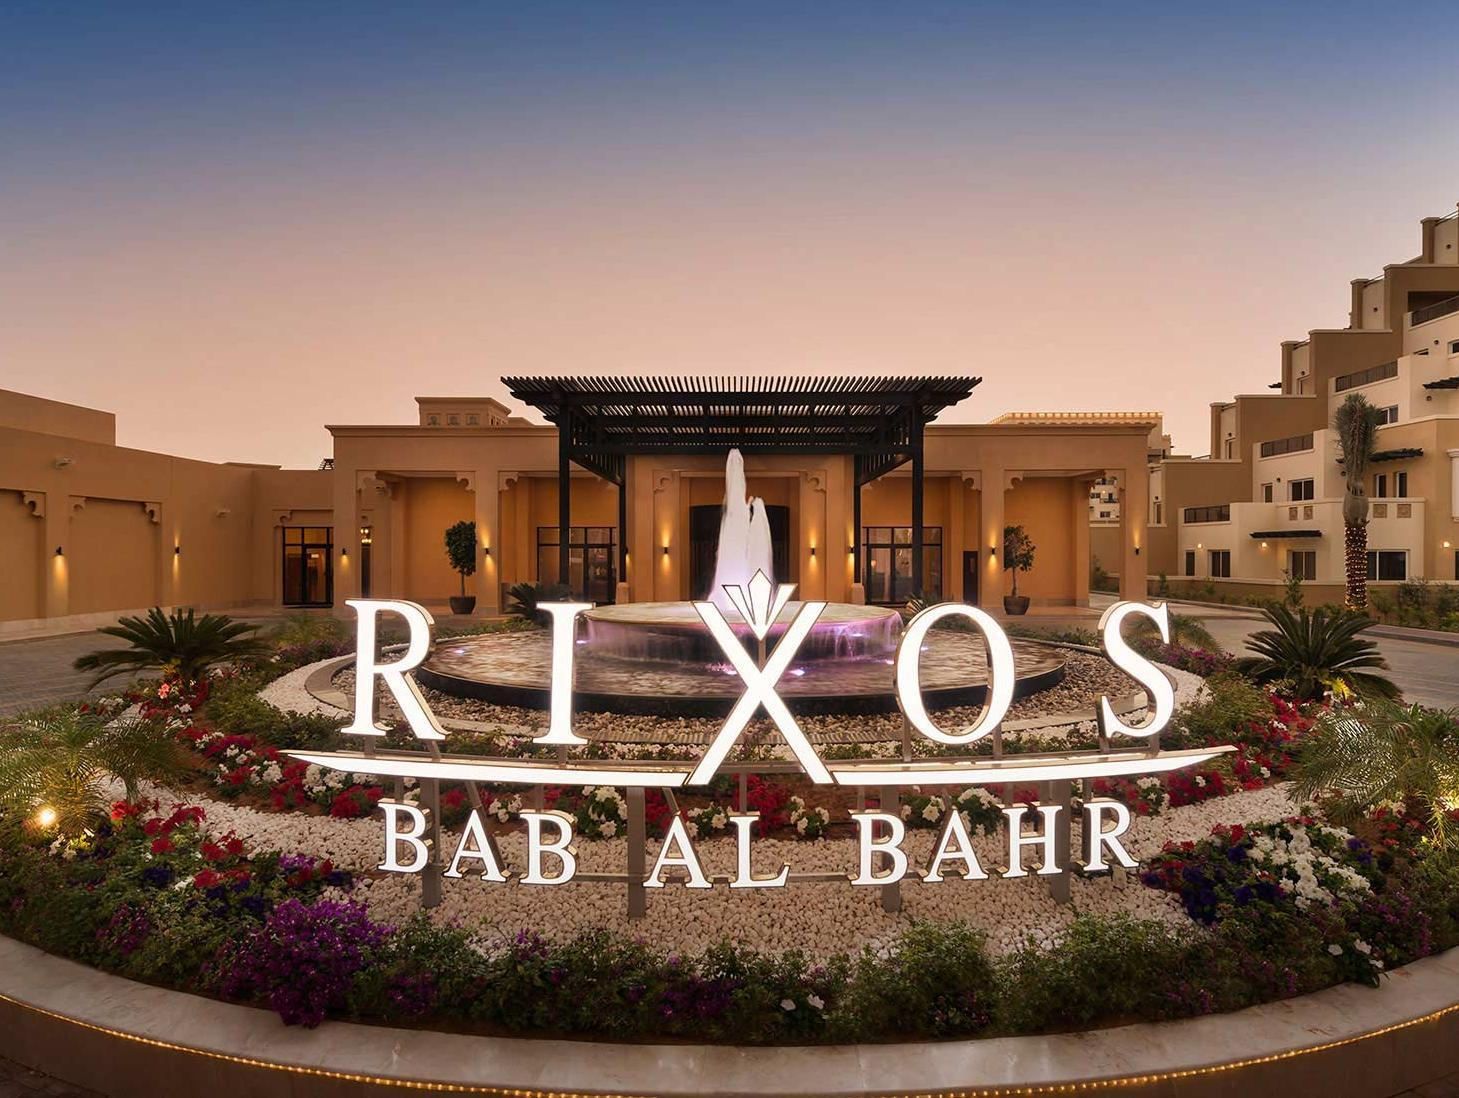 Al Khaznah United Arab Emirates  City new picture : Rixos Bab Al Bahr Hotel Ras Al Khaimah United Arab Emirates Photos ...